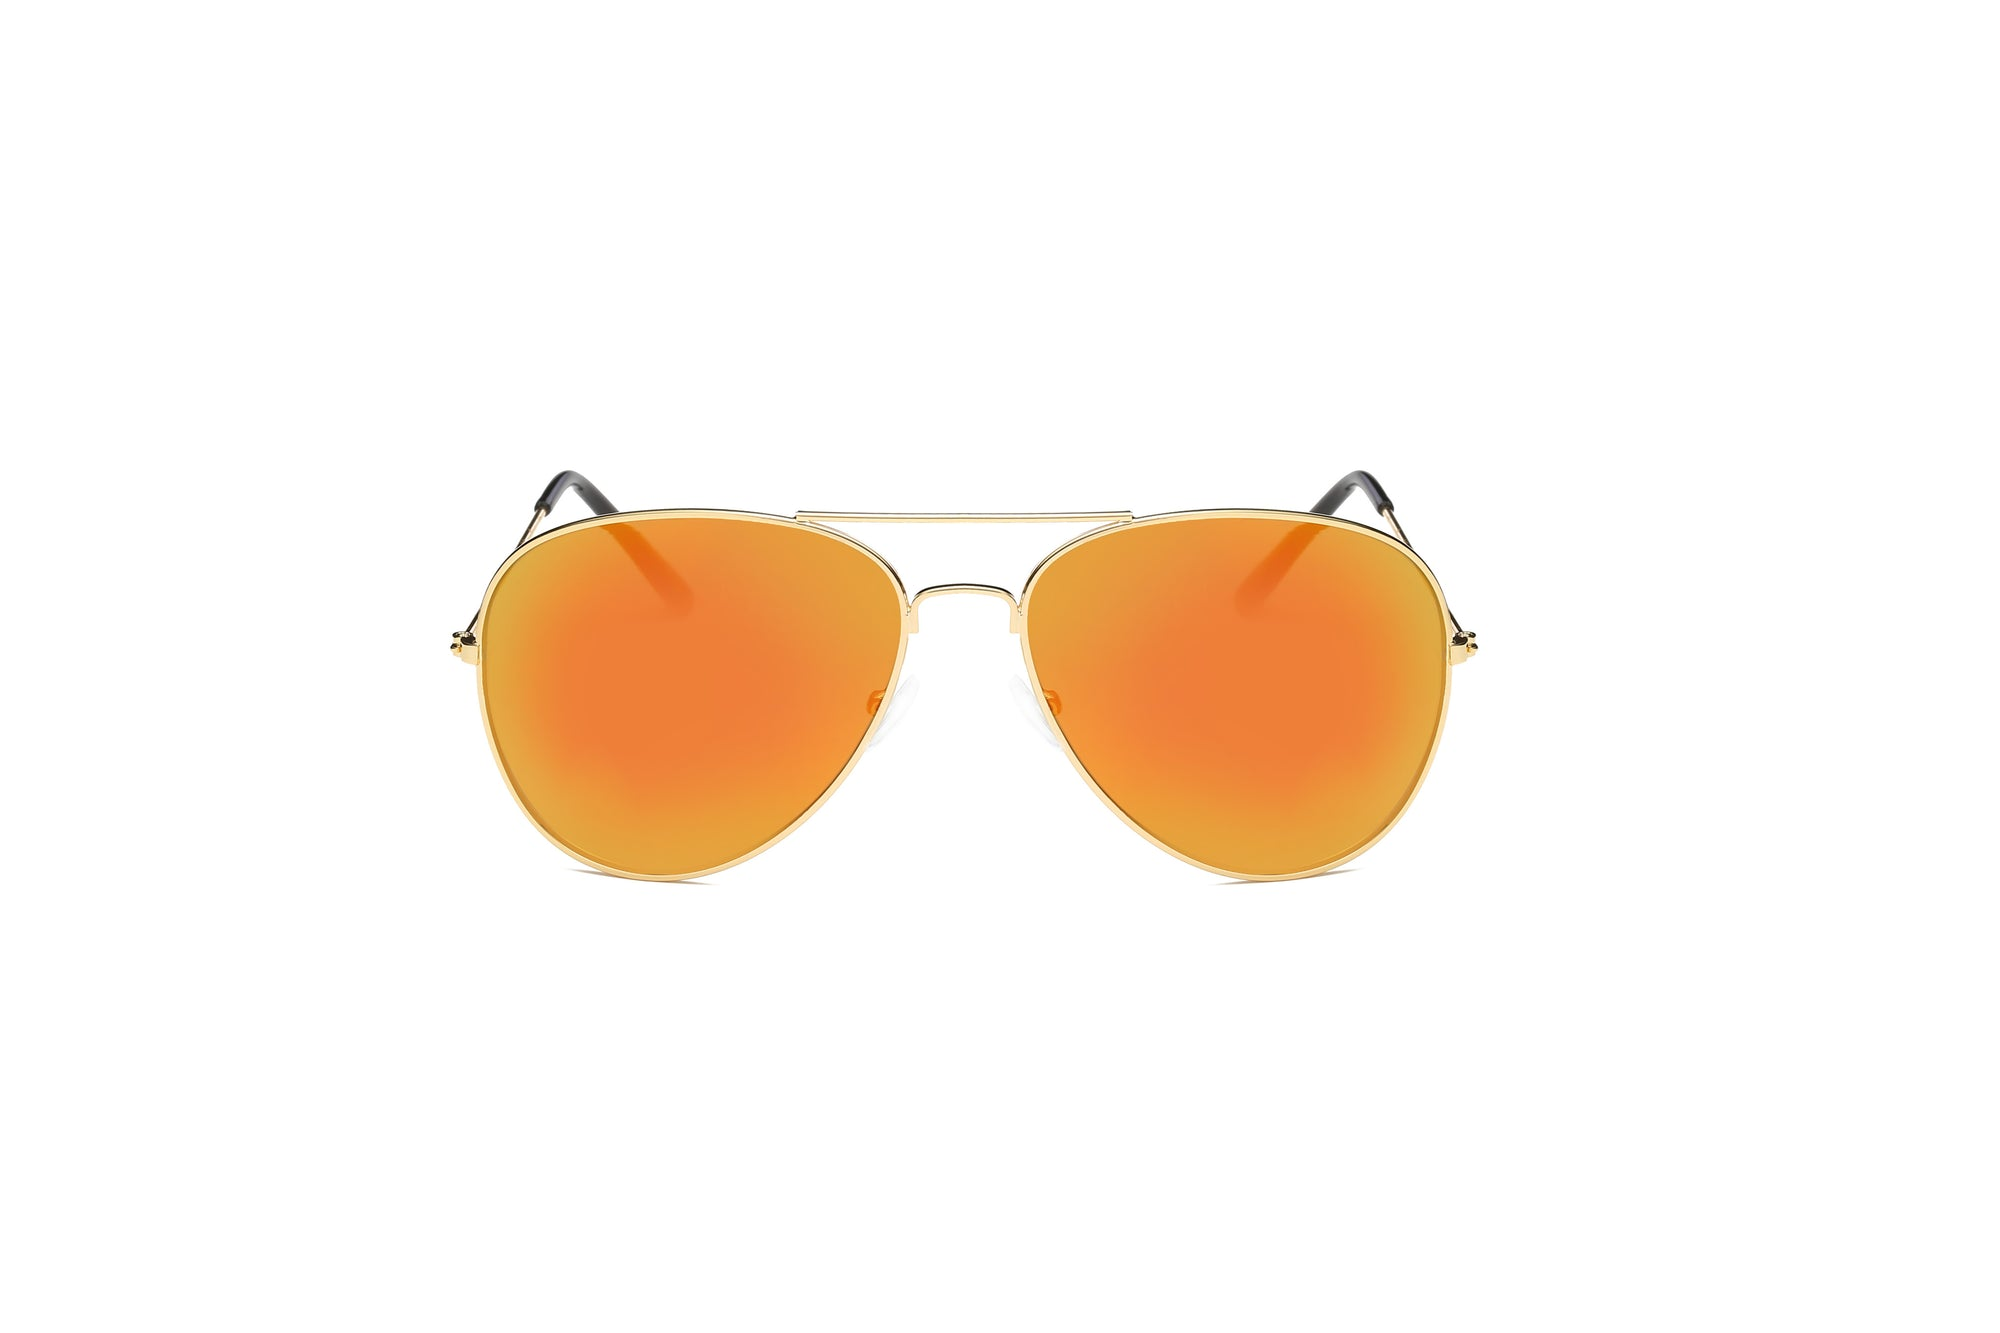 S1011 - Classic Aviator Fashion Sunglasses - Iris Fashion Inc. | Wholesale Sunglasses and Glasses